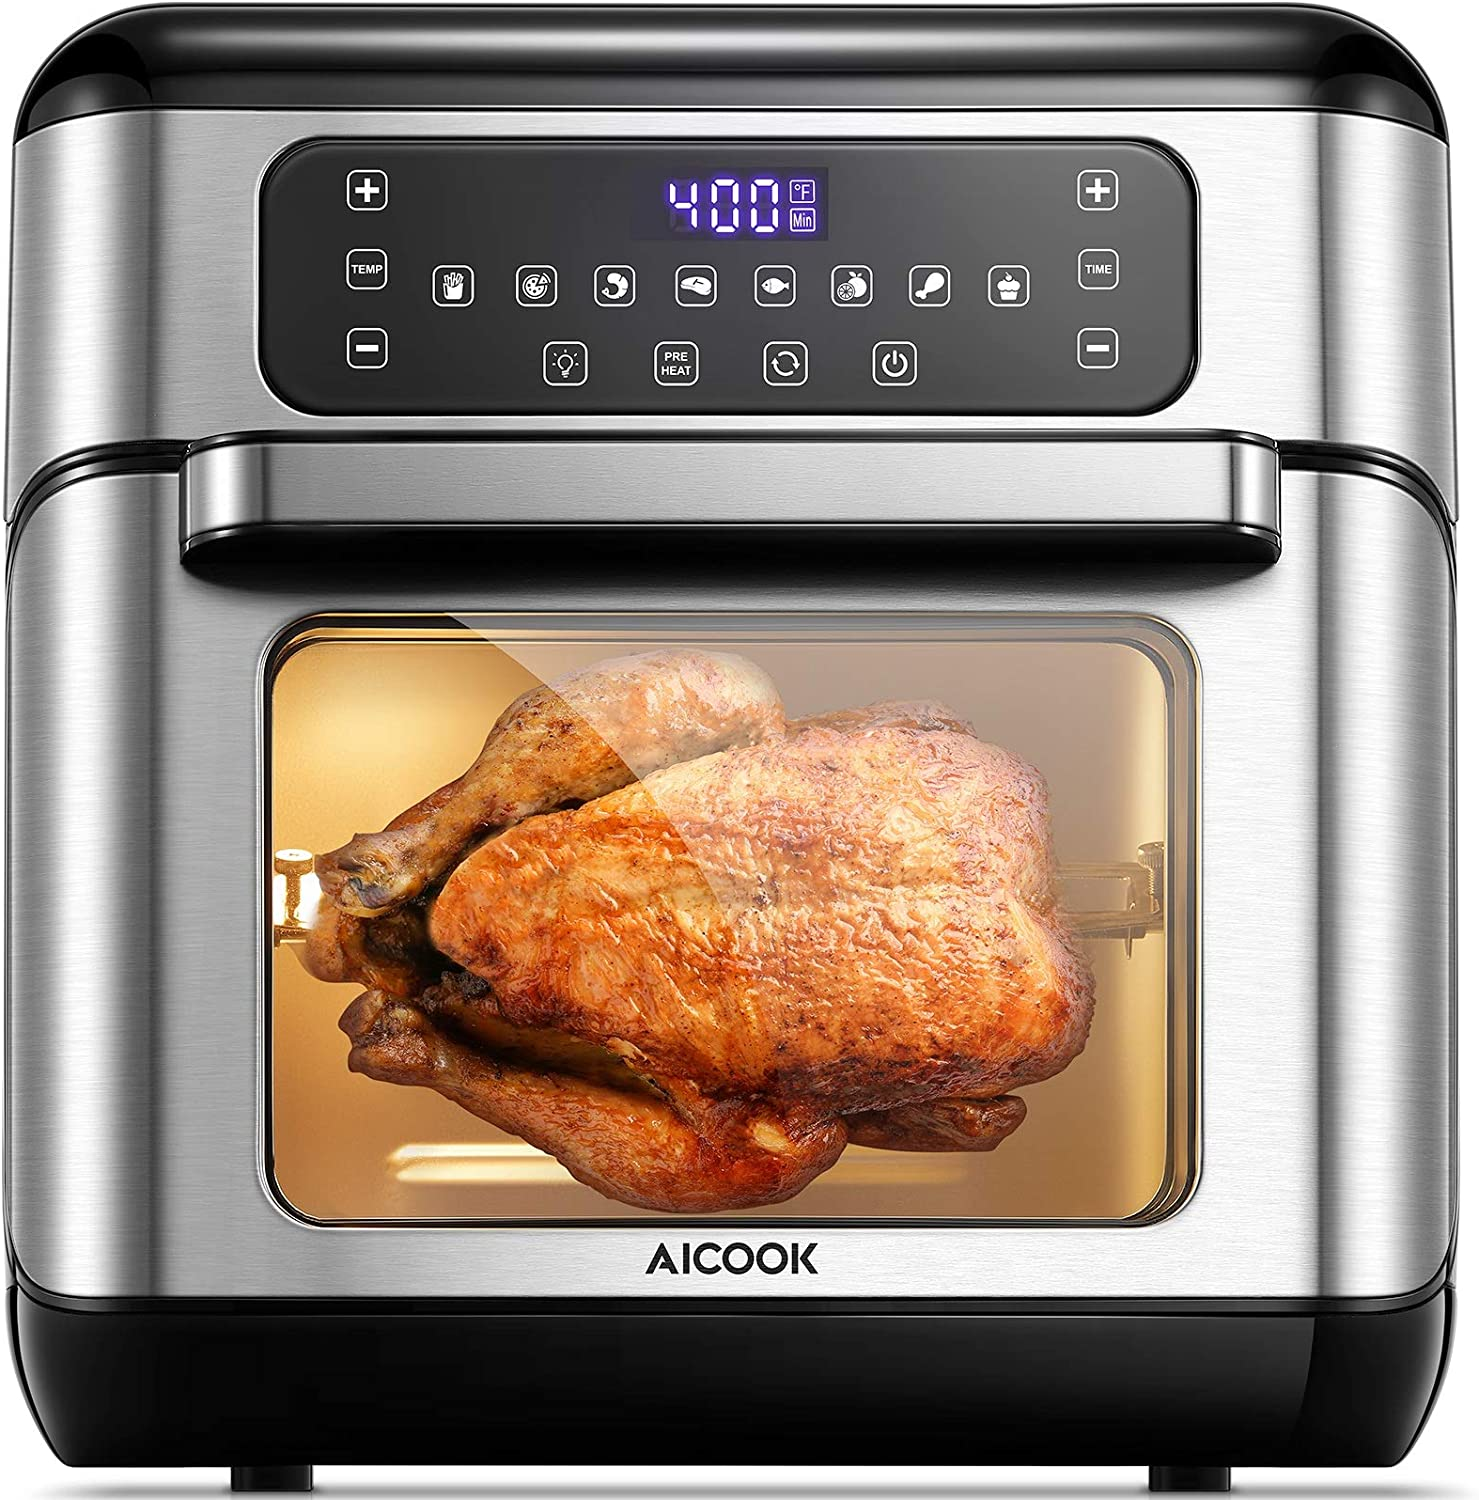 AICOOK 11Quart Air Fryer,Air Oven,1500W Rotisserie Oven,With One-button Digital Control,Precise Temperature Control,Air Fry Oil-Free,Nonstick, Accessories & Cookbook Included